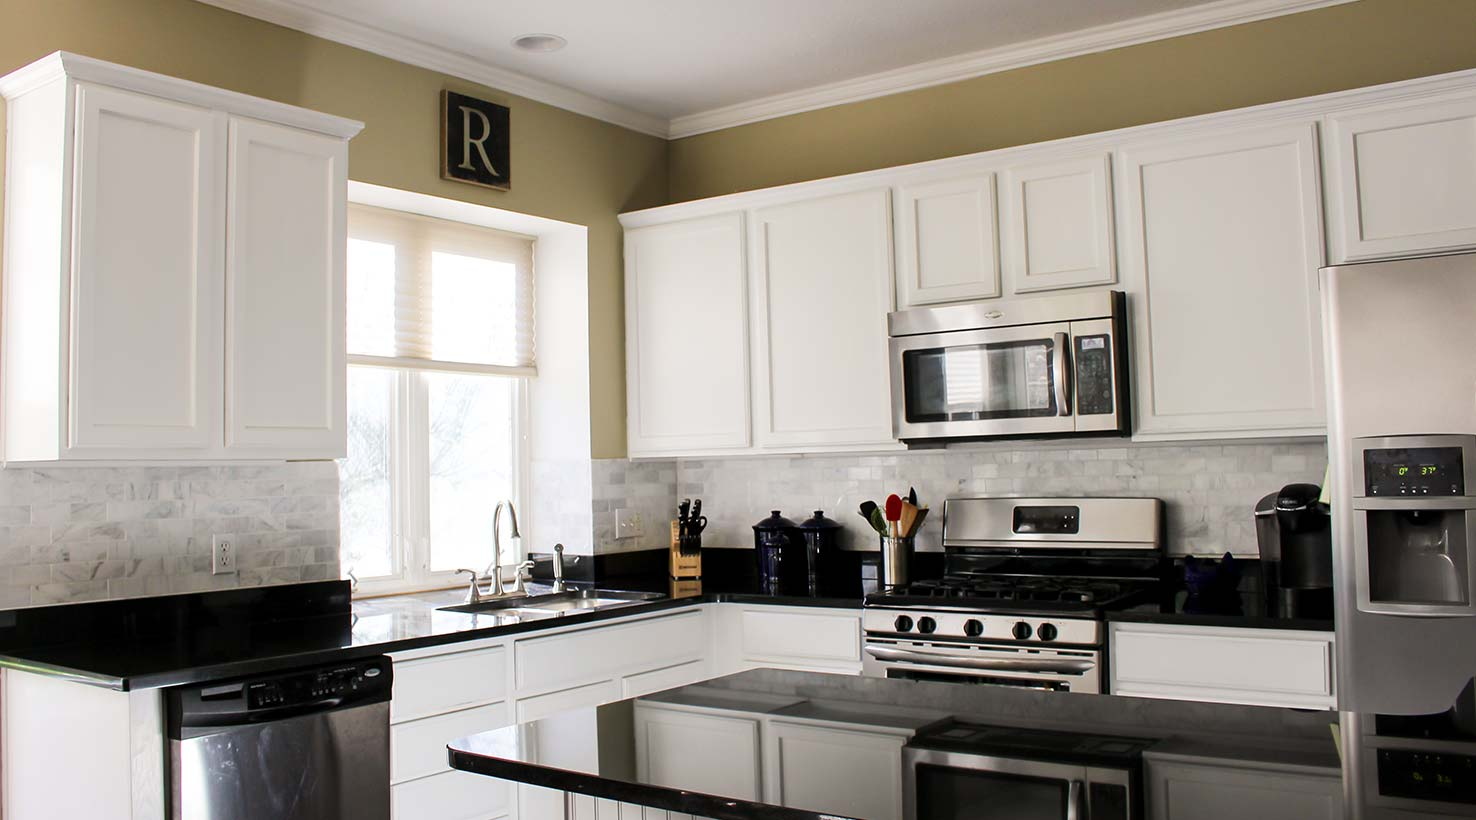 Kitchen color inspiration gallery sherwin williams for Popular kitchen paint colors